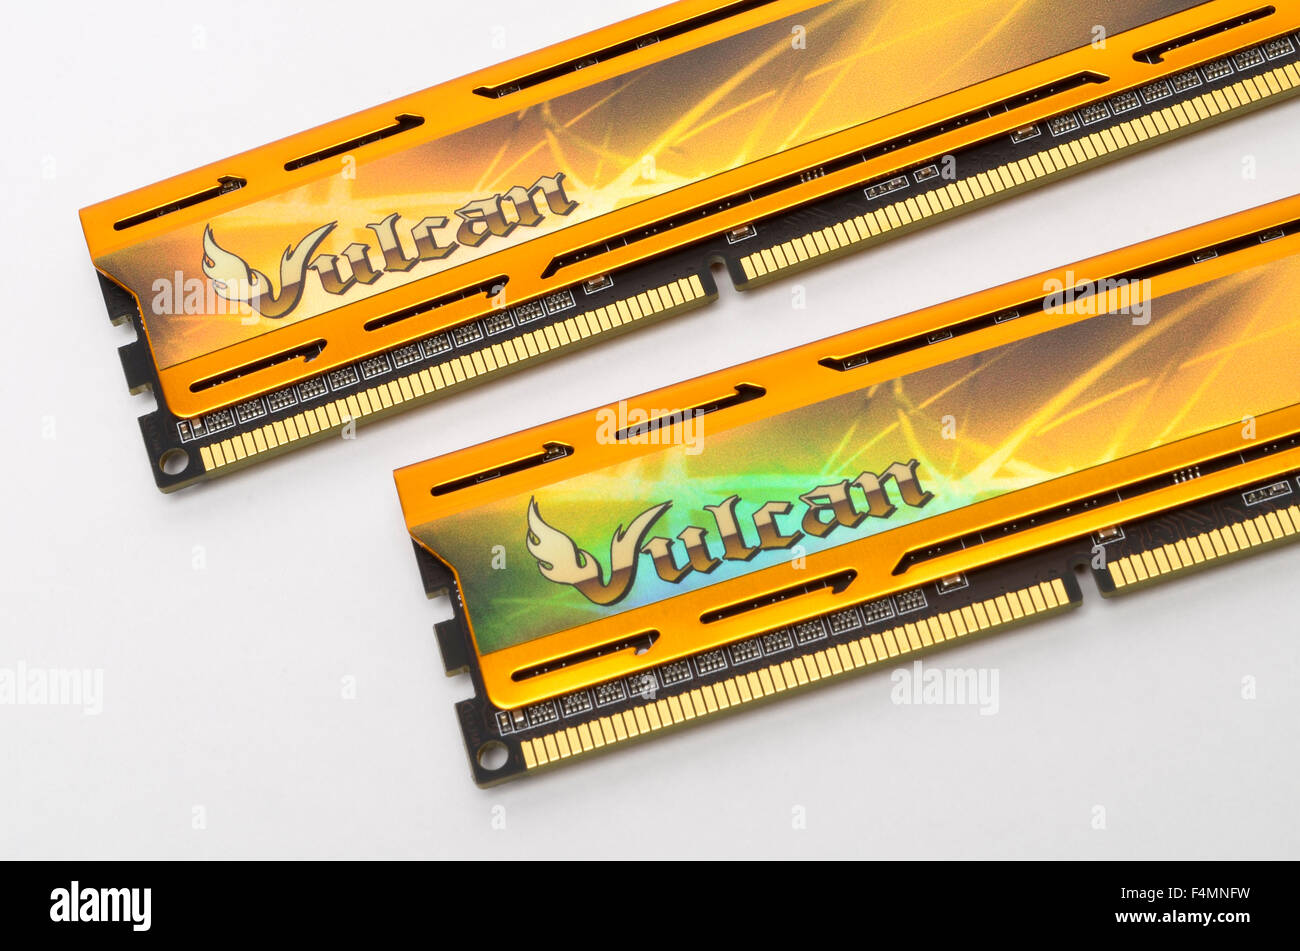 Team Group Vulcan DDR3 4Gb 2400MHz memory cards with holographic stickers on heat spreaders. - Stock Image